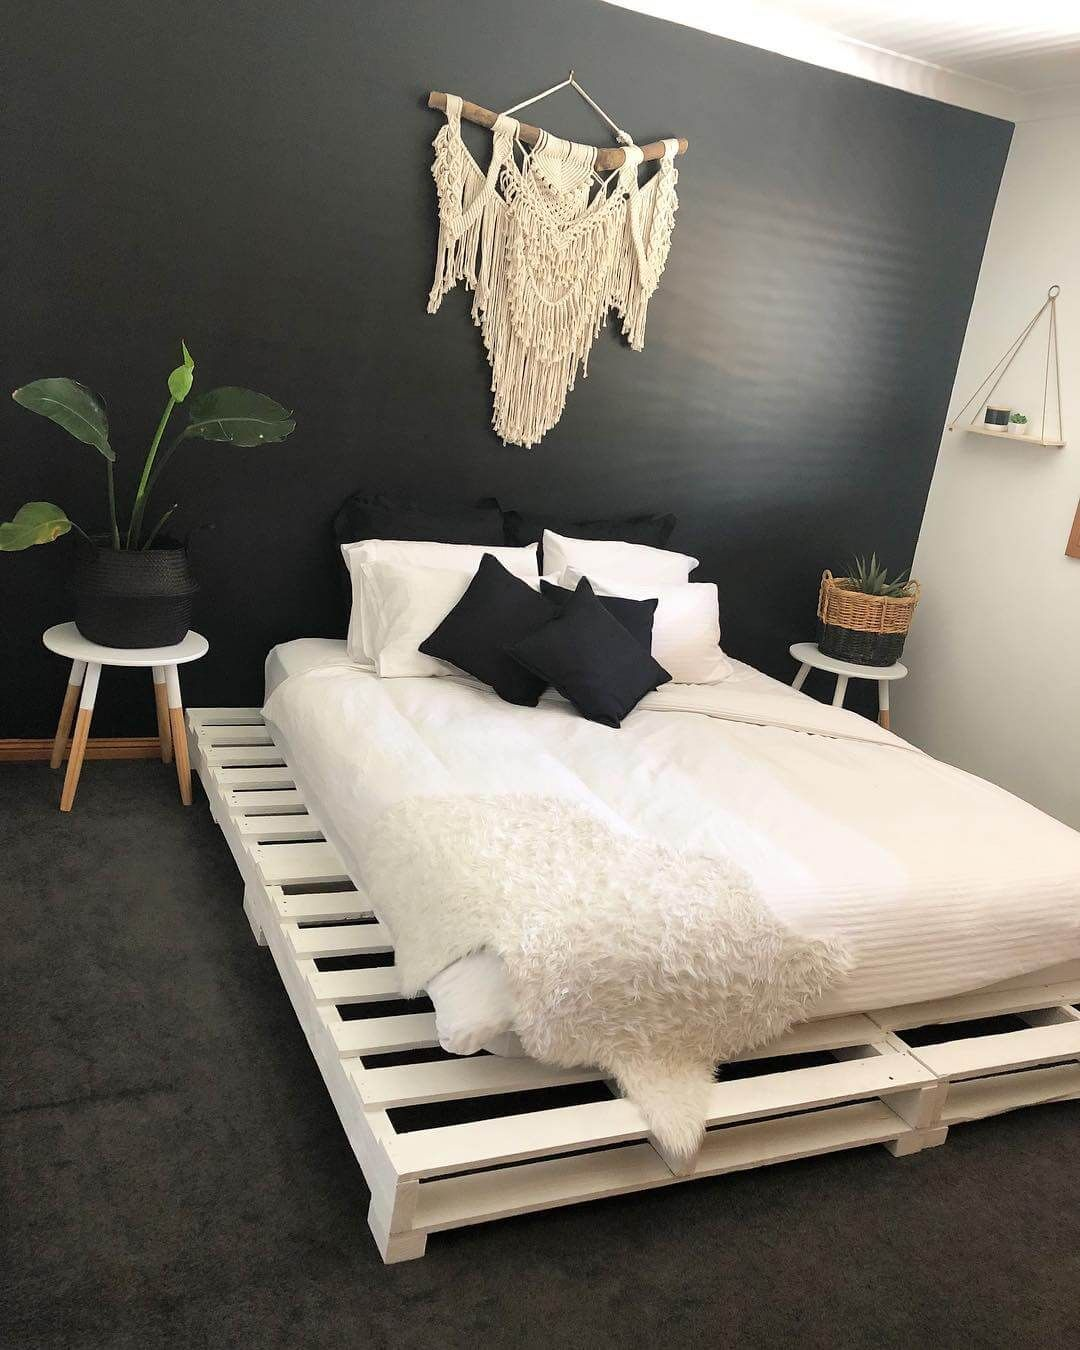 Top Ways Of Recycling Wooden Pallets Diy Pallet Bed Wooden Pallet Beds Wood Pallet Beds